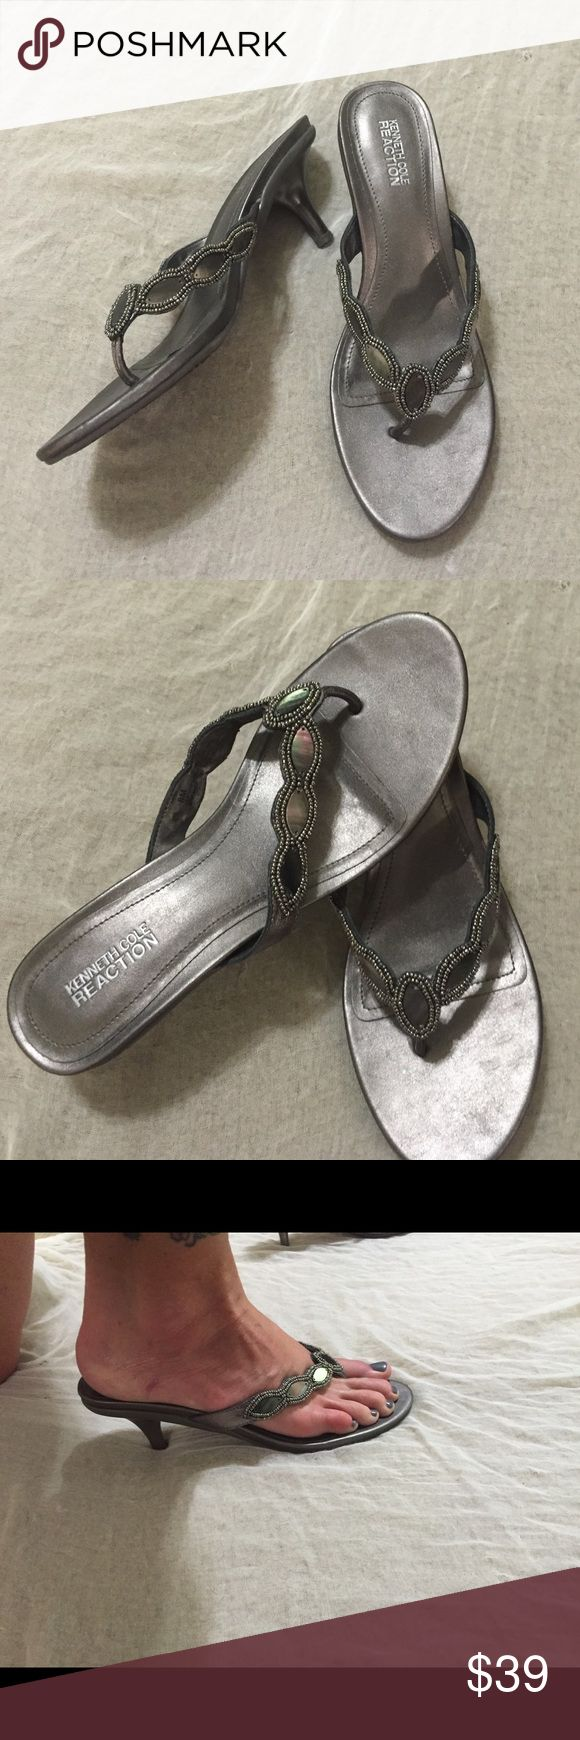 Lovely Kenneth Cole metallic pewter sandals Lovely Kenneth Cole reaction pewter sandals with kitten heels! The straps are embellished with pewter beads and dark abalone. Comfortable and easy to wear with pants or skirts!! Used once. ❤️ Kenneth Cole Reaction Shoes Sandals